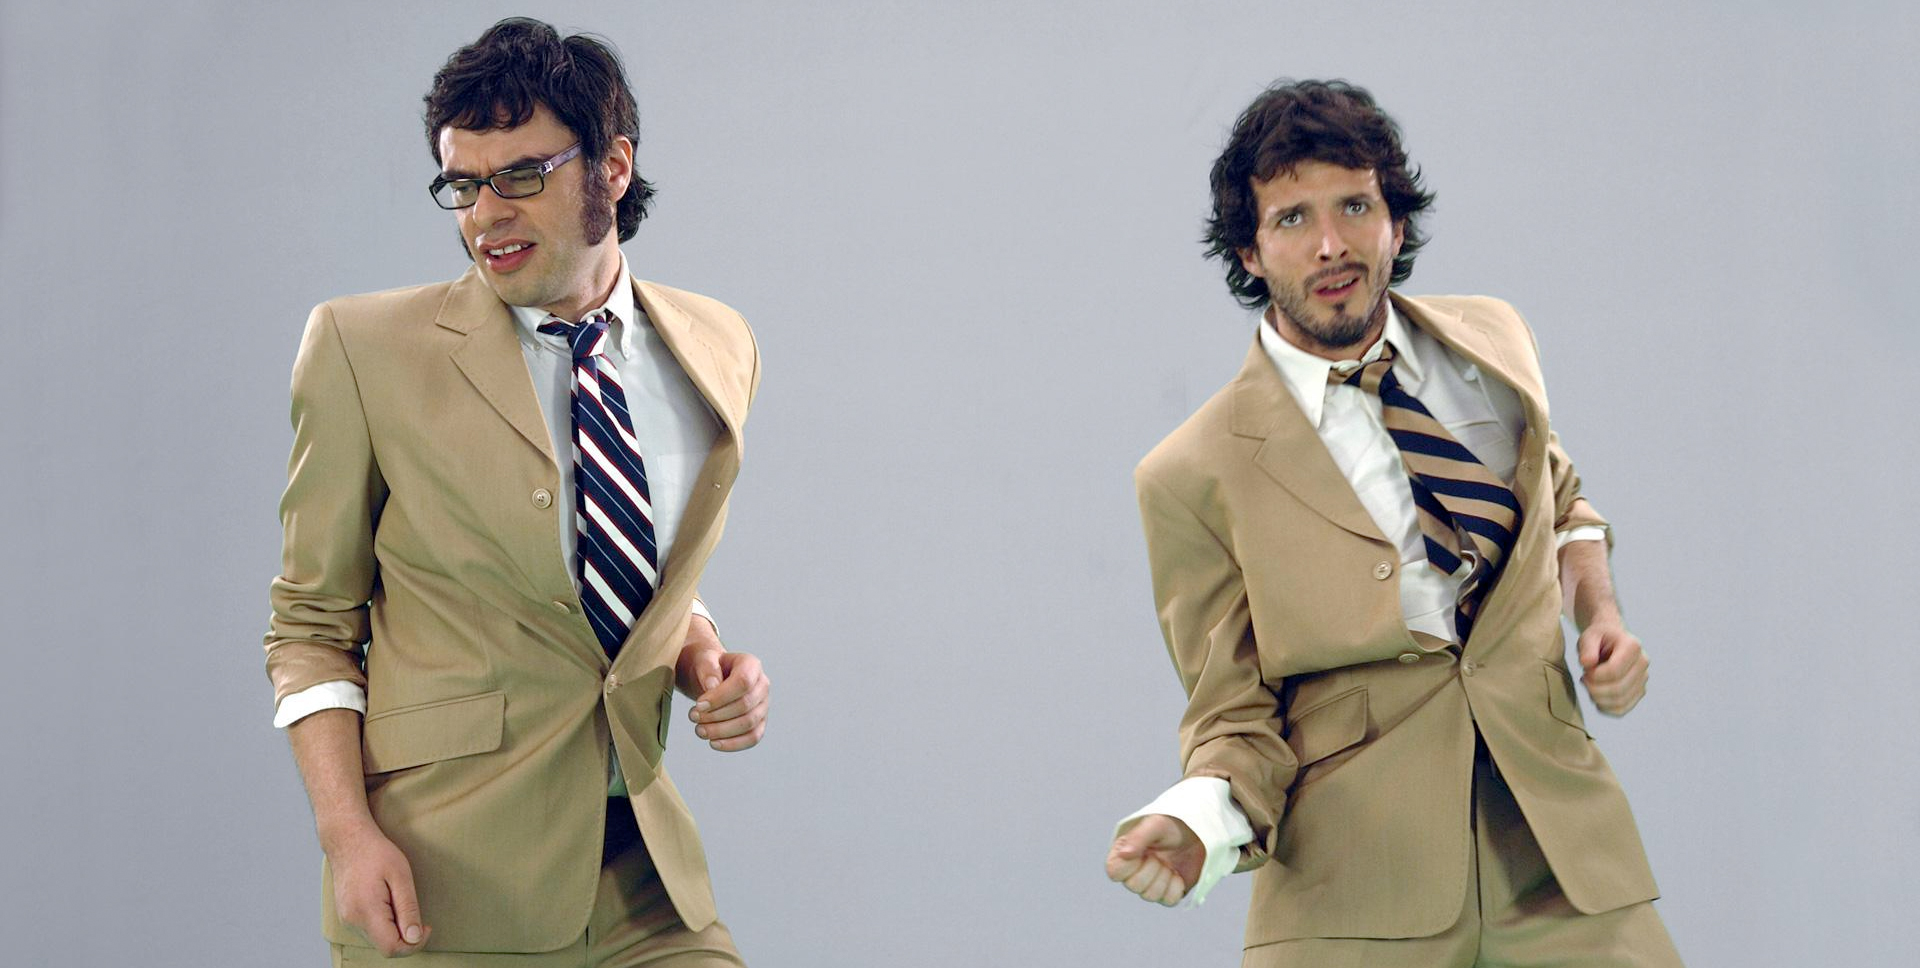 flightoftheconchords-suits-dancing.jpg